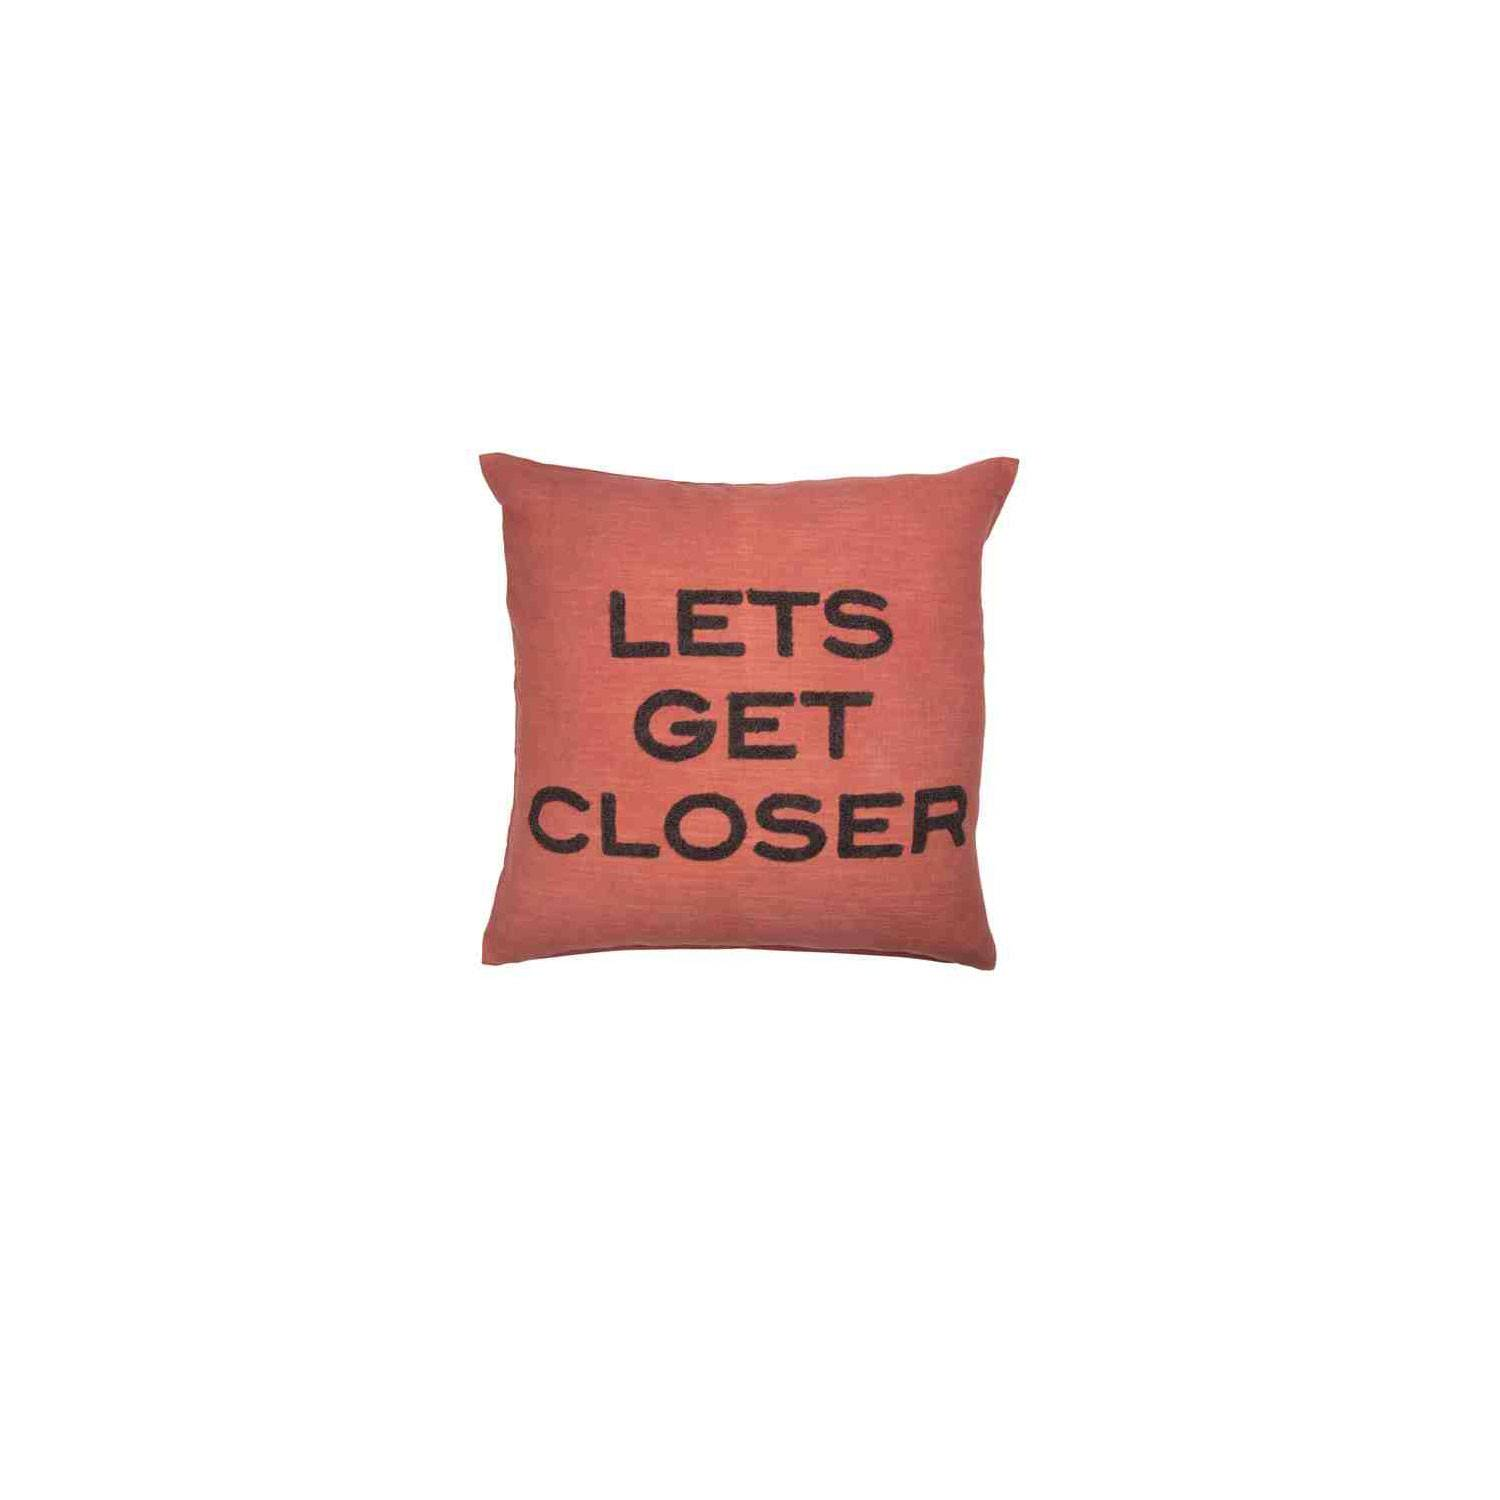 Day Home Day Lets Get Closer Cushion Cover 50x50 cm, Kiss